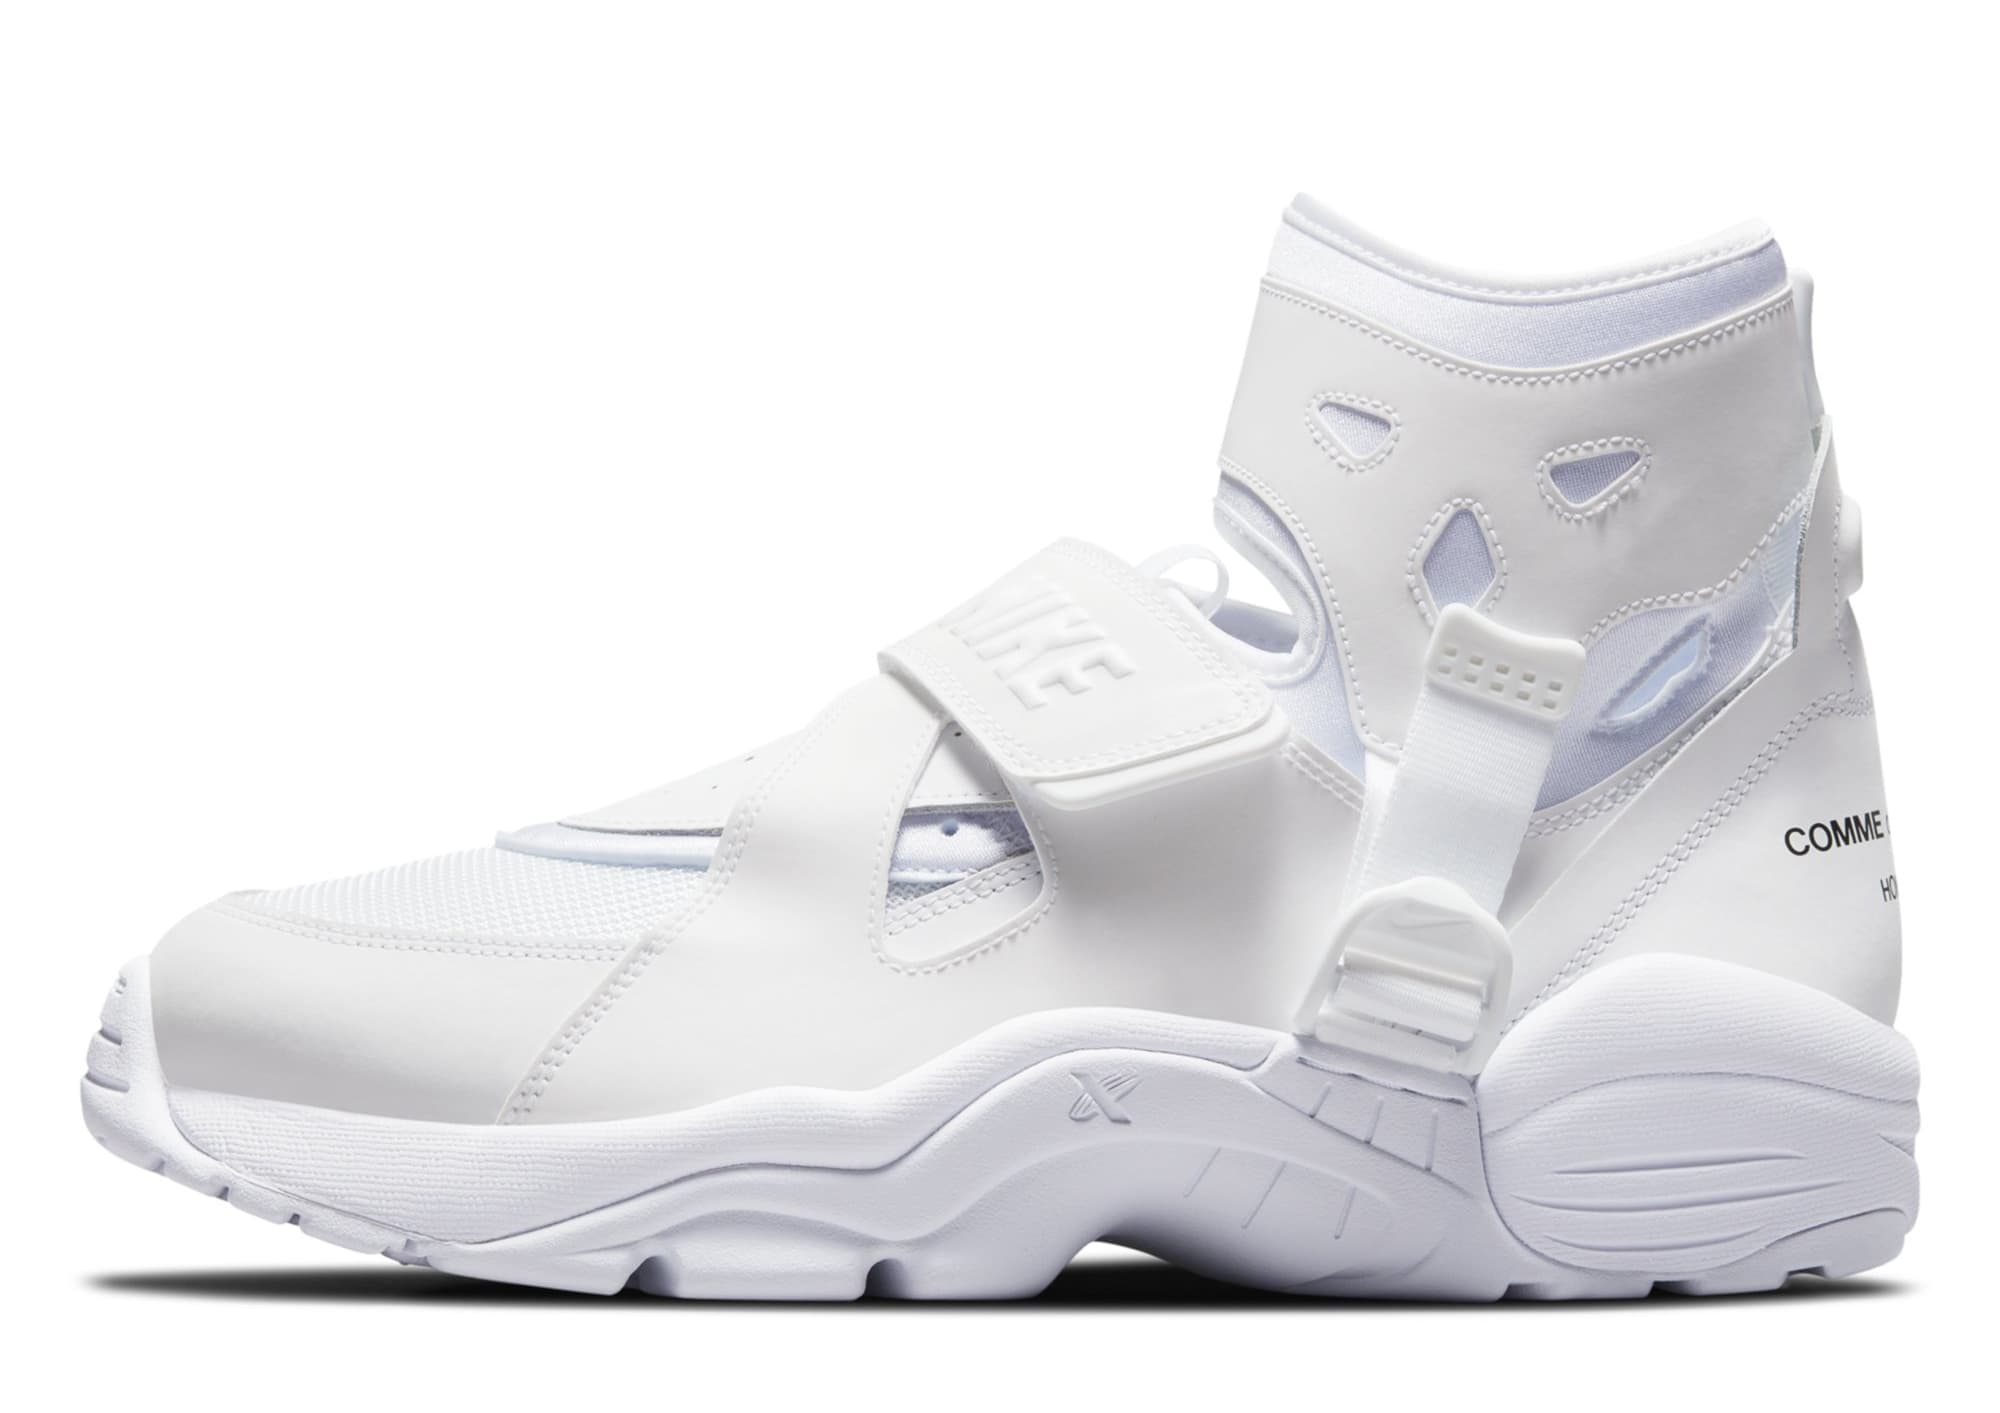 Comme des Garcons Homme Plus x Nike Air Carnivore 'White' (Lateral)